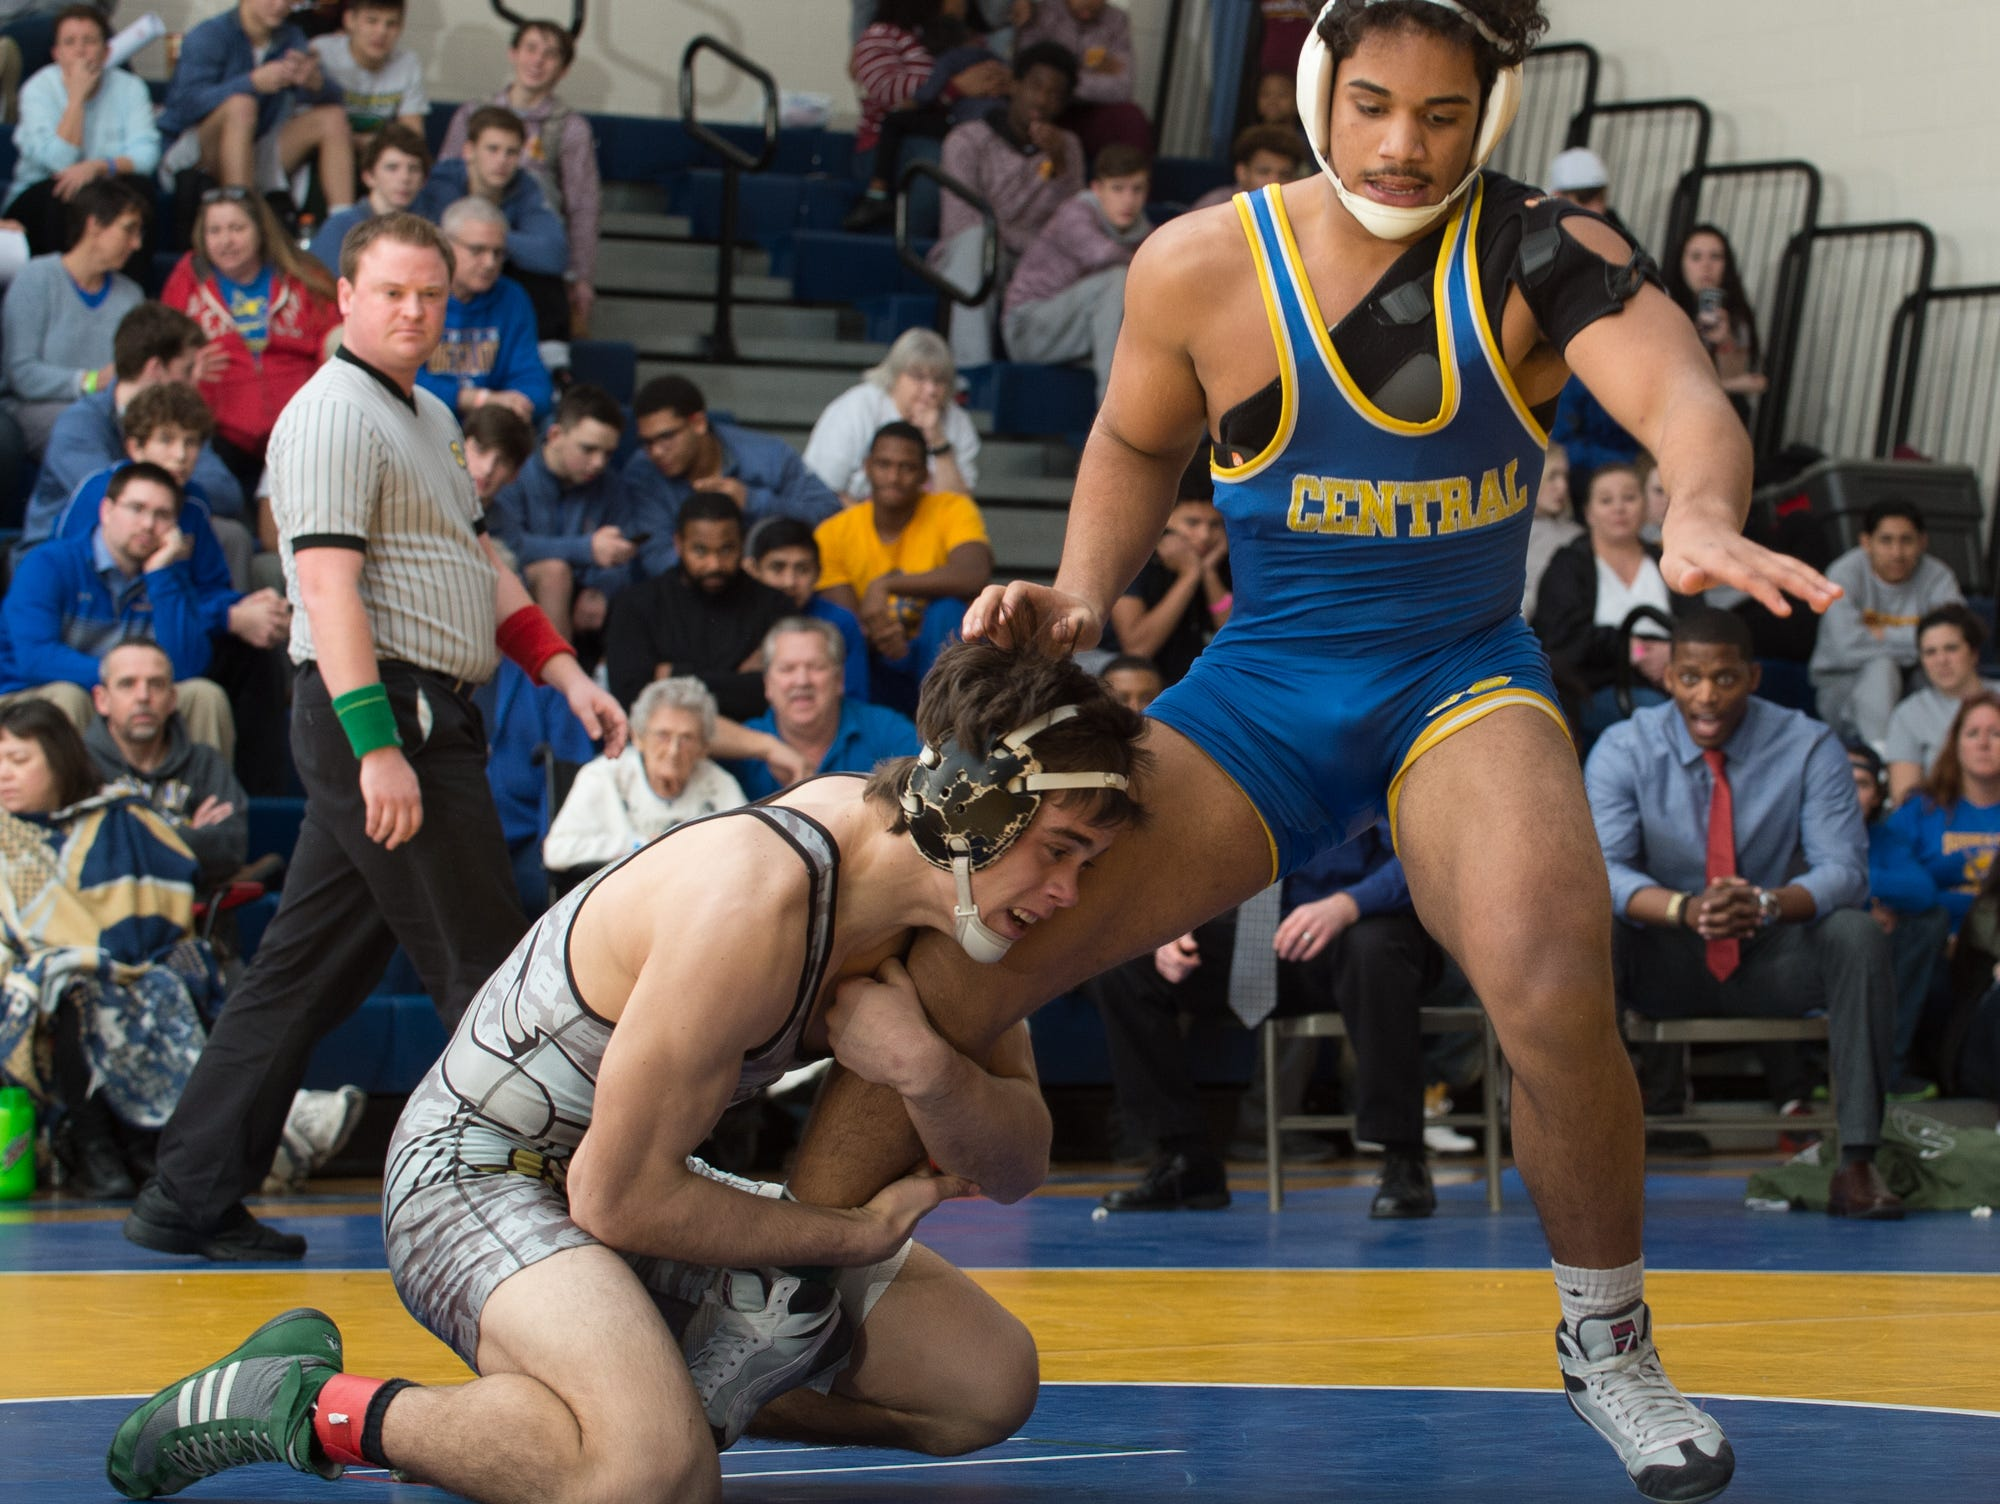 Cape Henlopen's Cory Lawson, left, hold the leg of Sussex Central's Brandon Bautista in the 160 pound championship match at the Henlopen Conference wrestling tournament at Sussex Central High School.